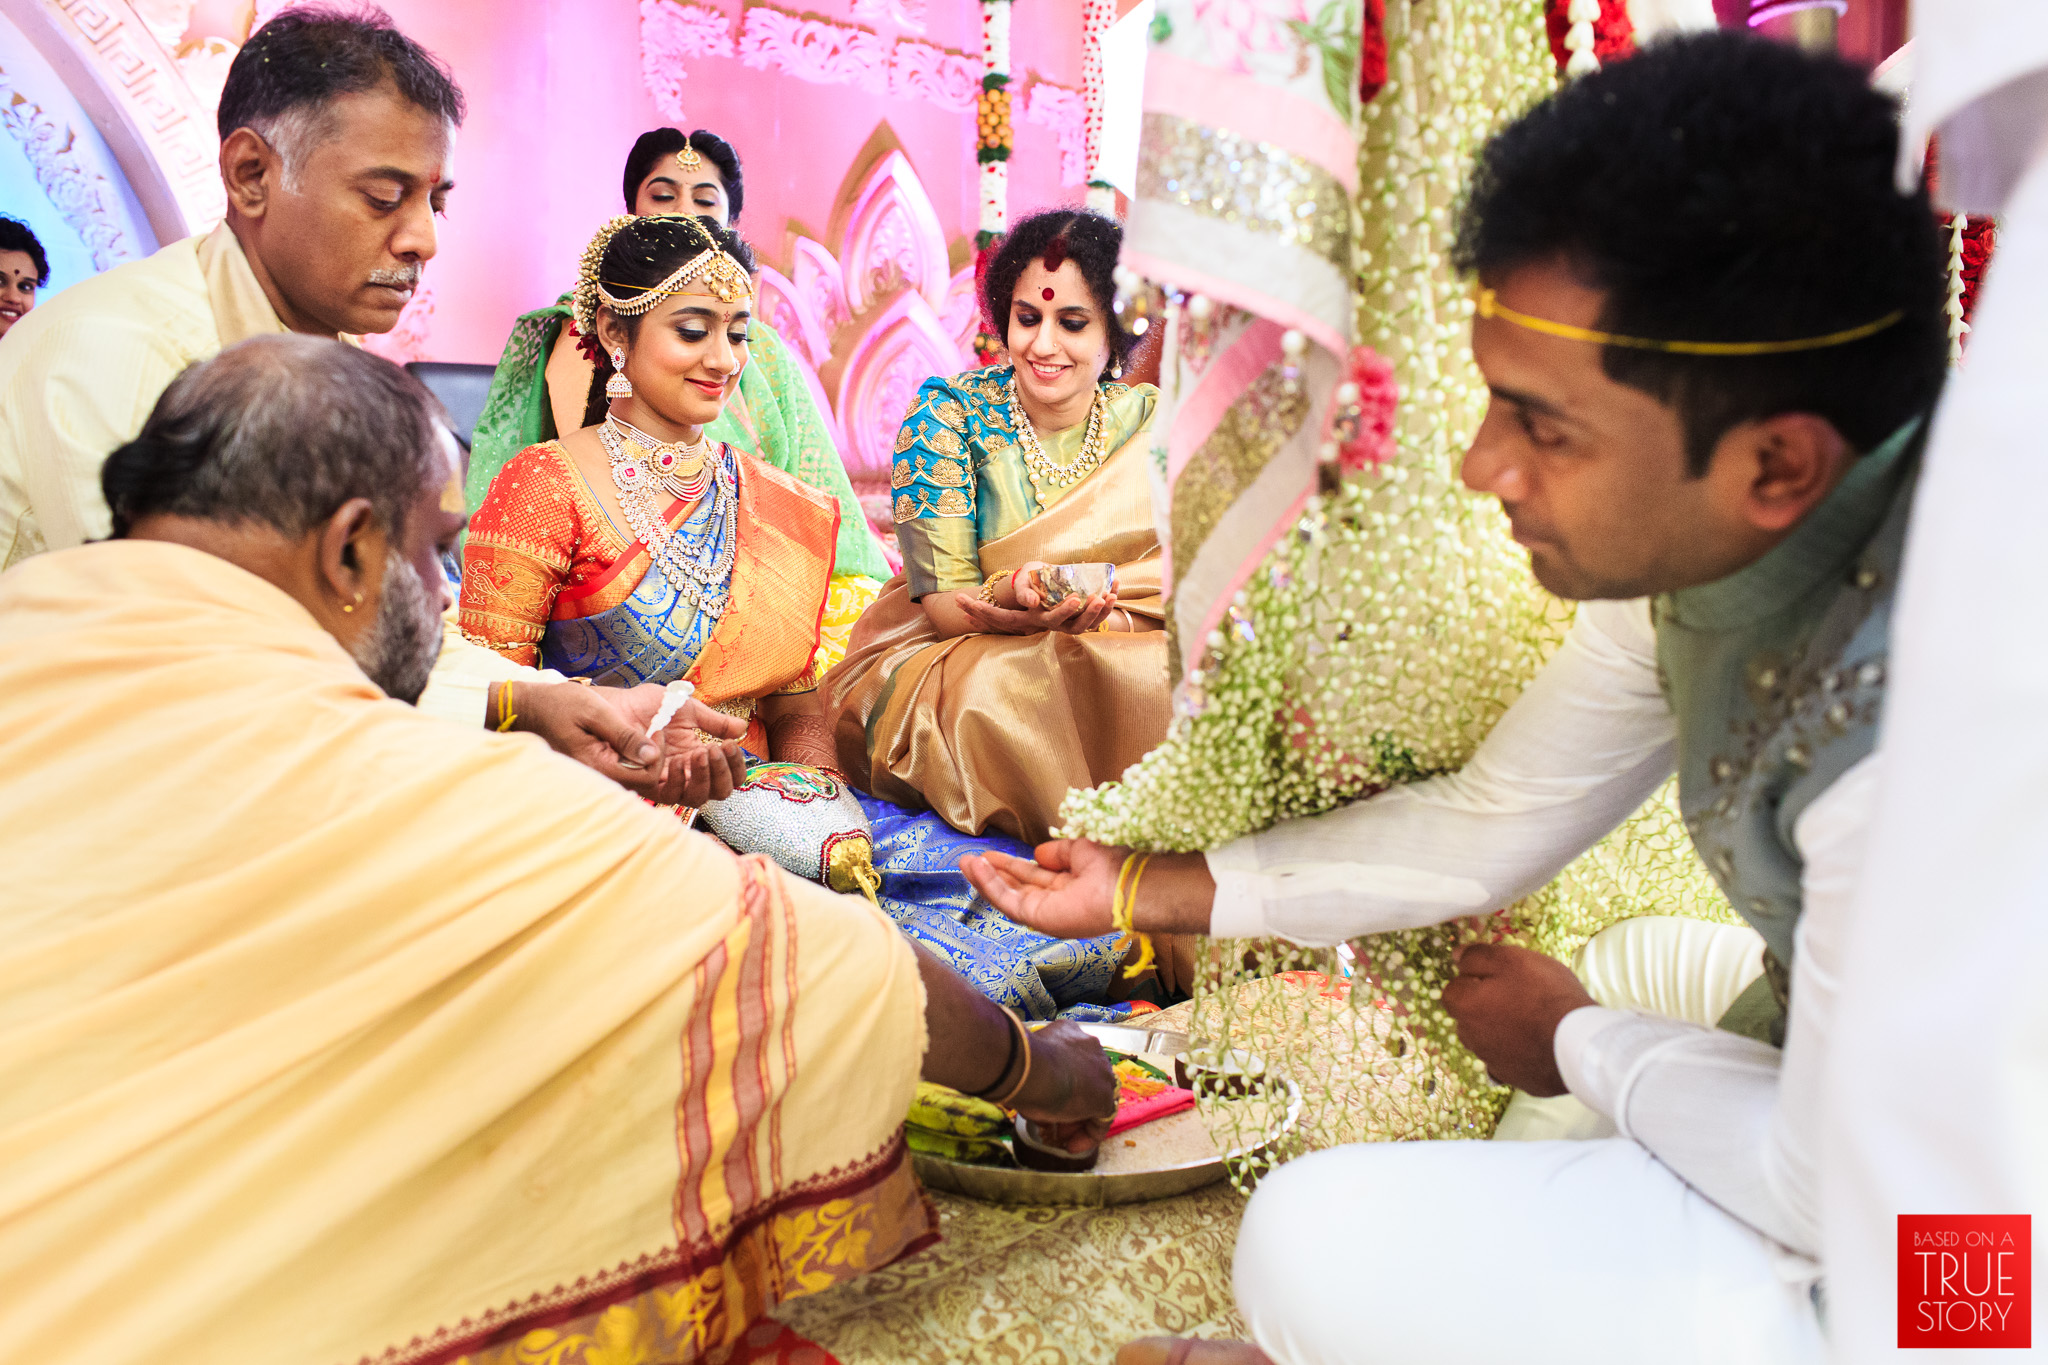 Candid-Wedding-Photography-Hyderabad-0046.jpg